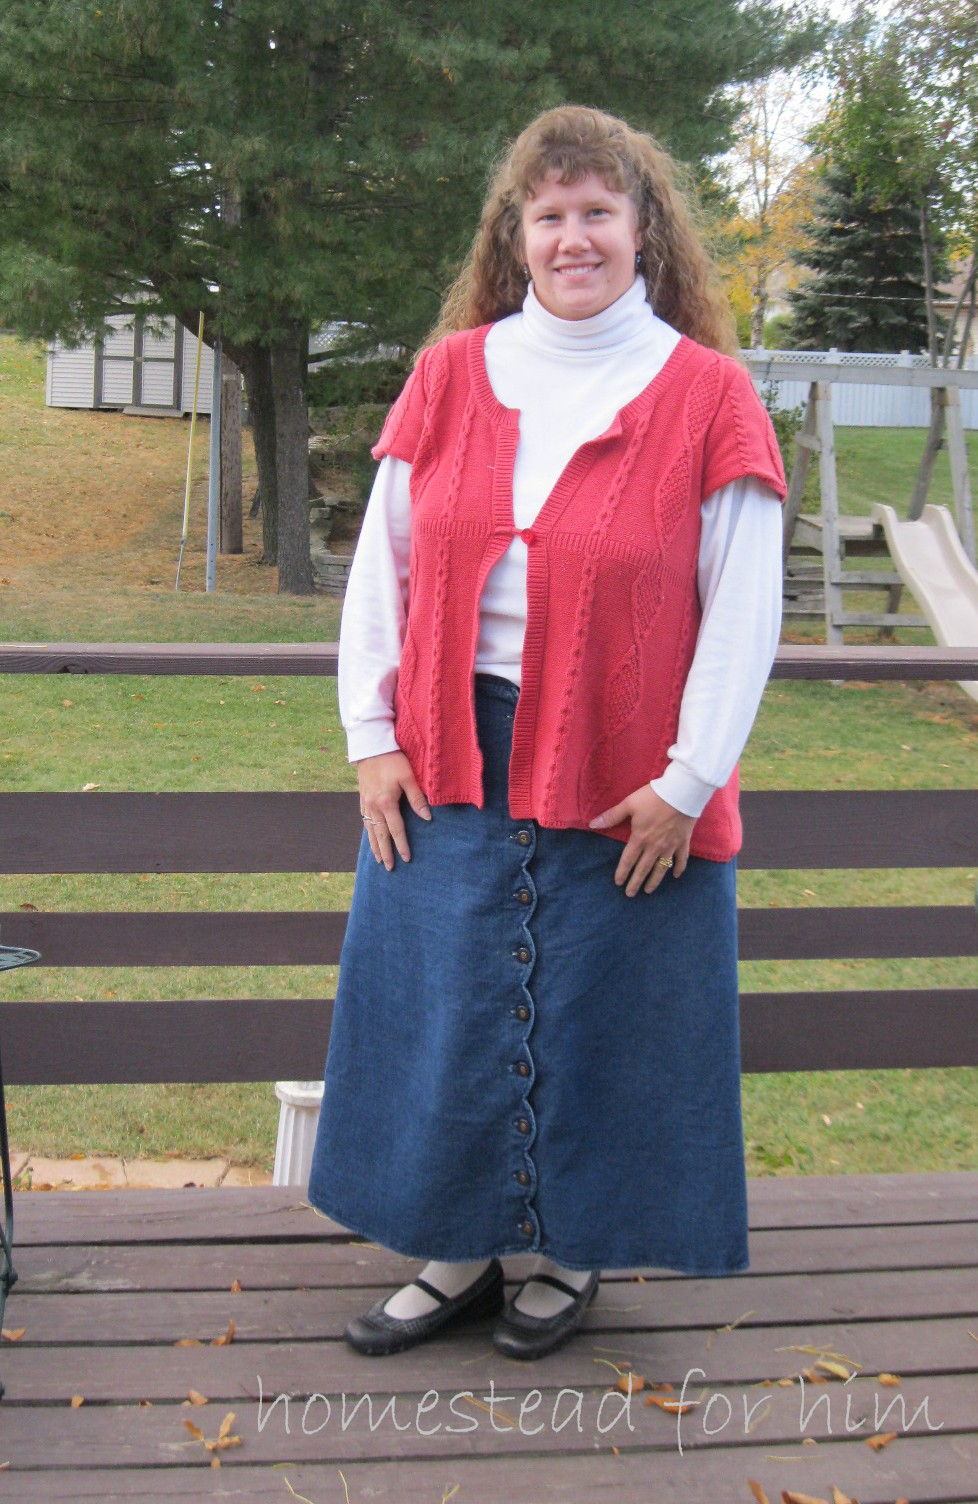 dfdce3a35 Our Homestead For Him: Why I Wear Skirts